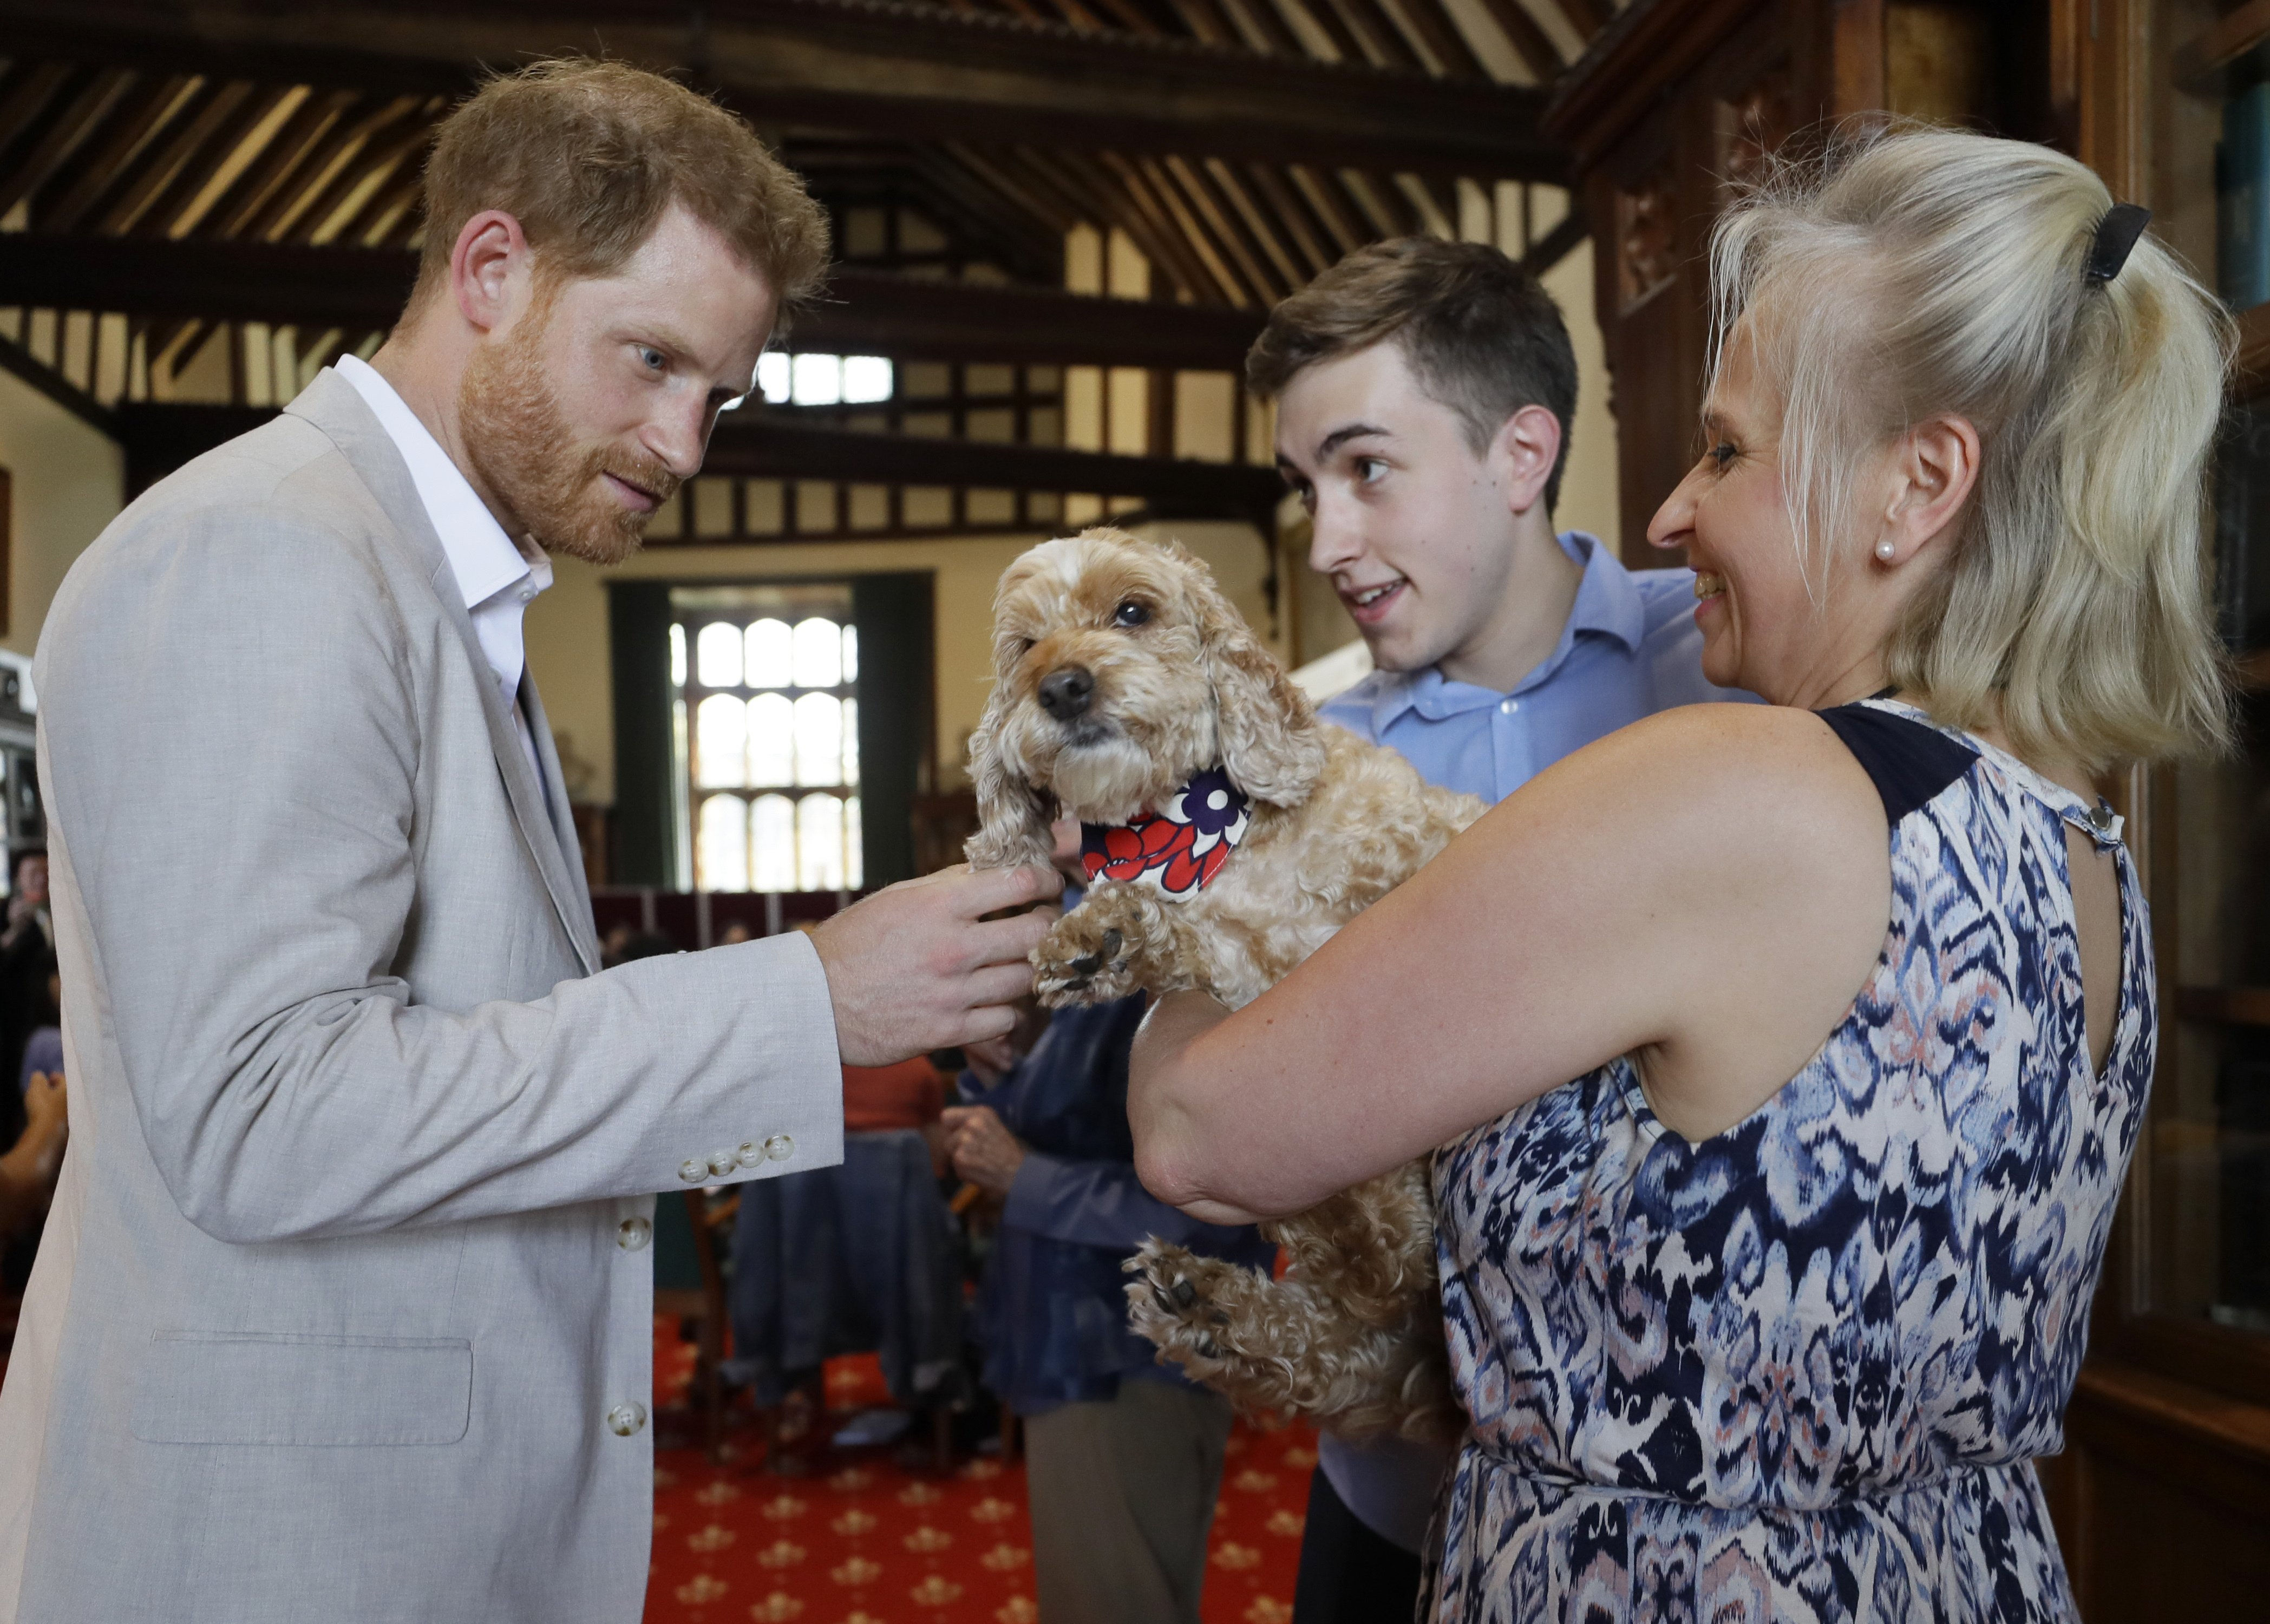 Prince Harry pets a dog during a Roots & Shoots meeting on July 23 at St. George's House, Windsor Castle | Photo: Getty Images